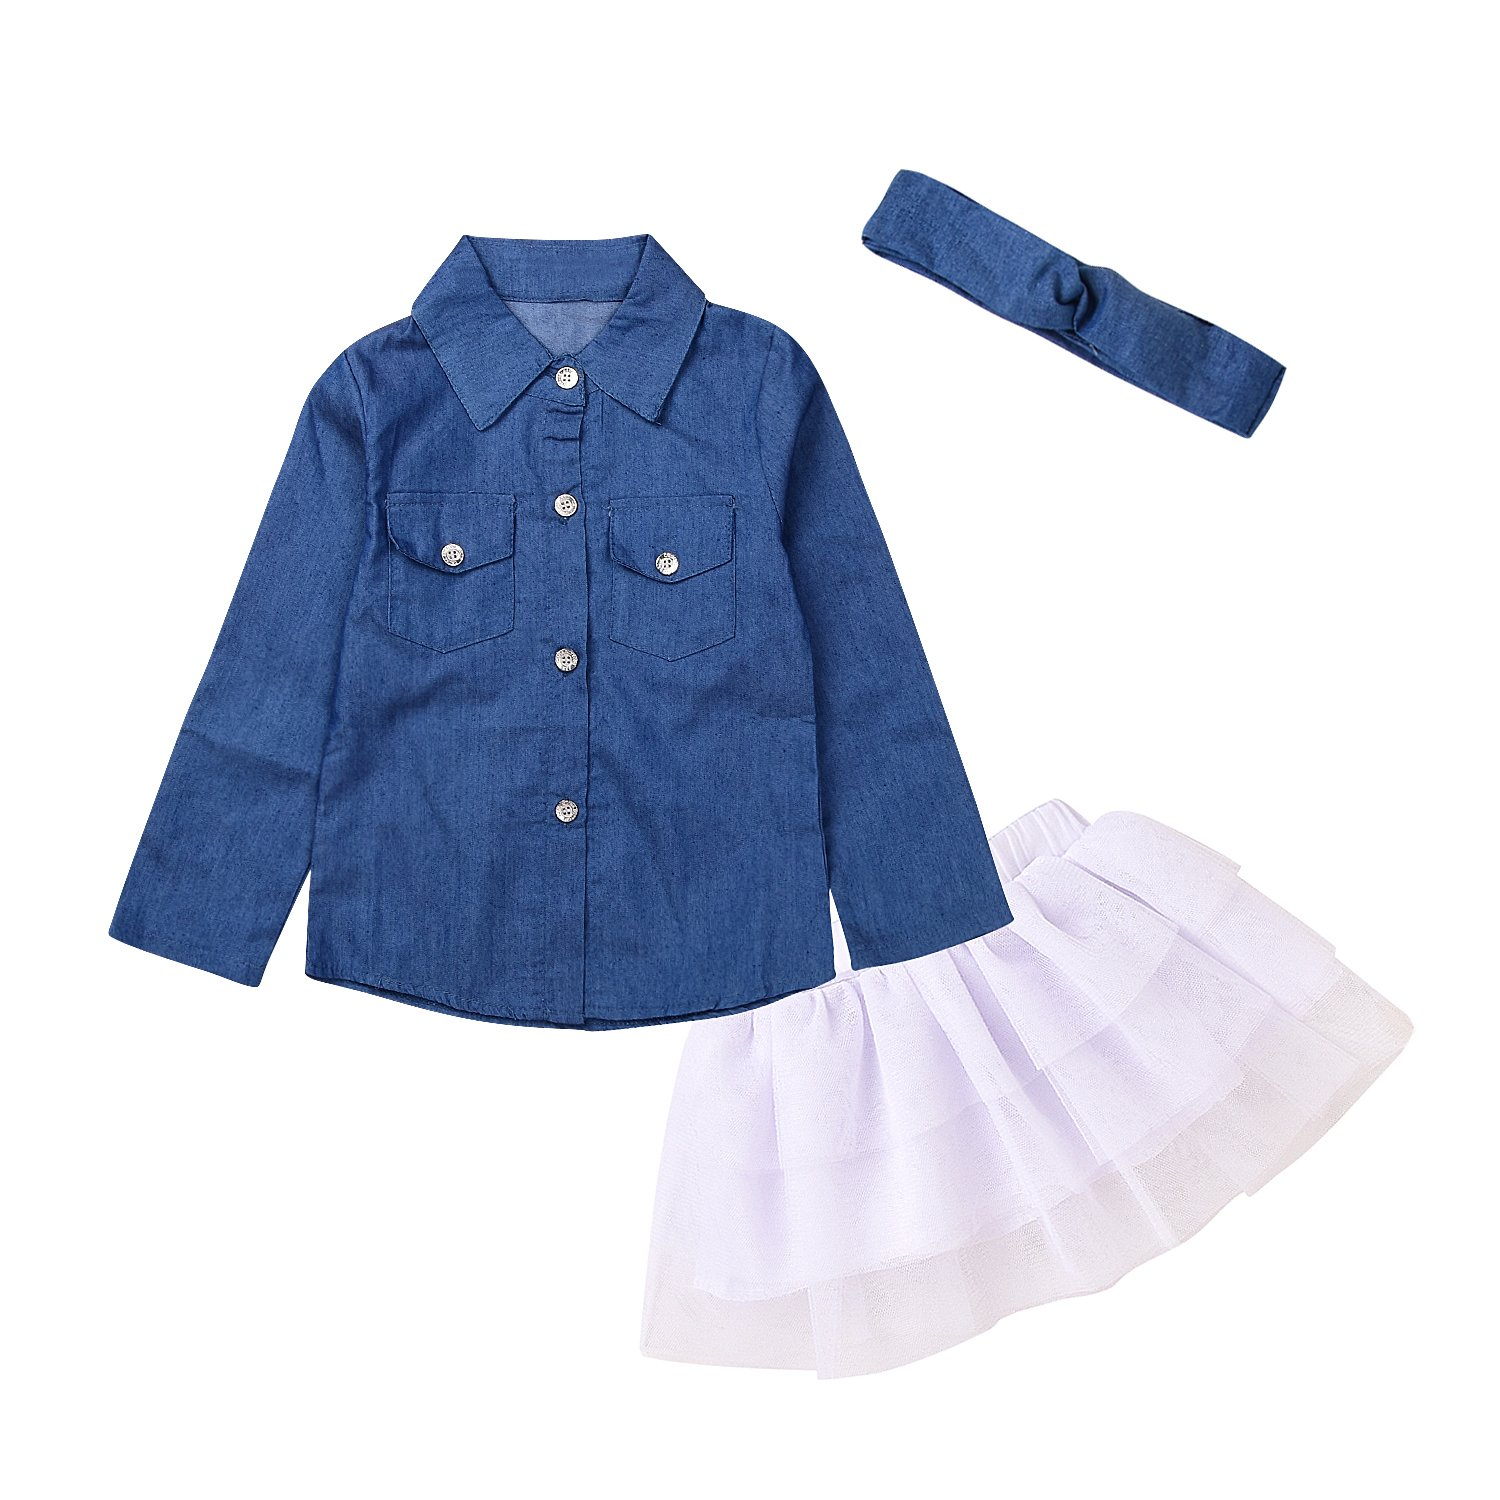 3pc Cute Baby Girl Blue Jean Shirt +Princess Tulle Overlay Lace Dress+Headband